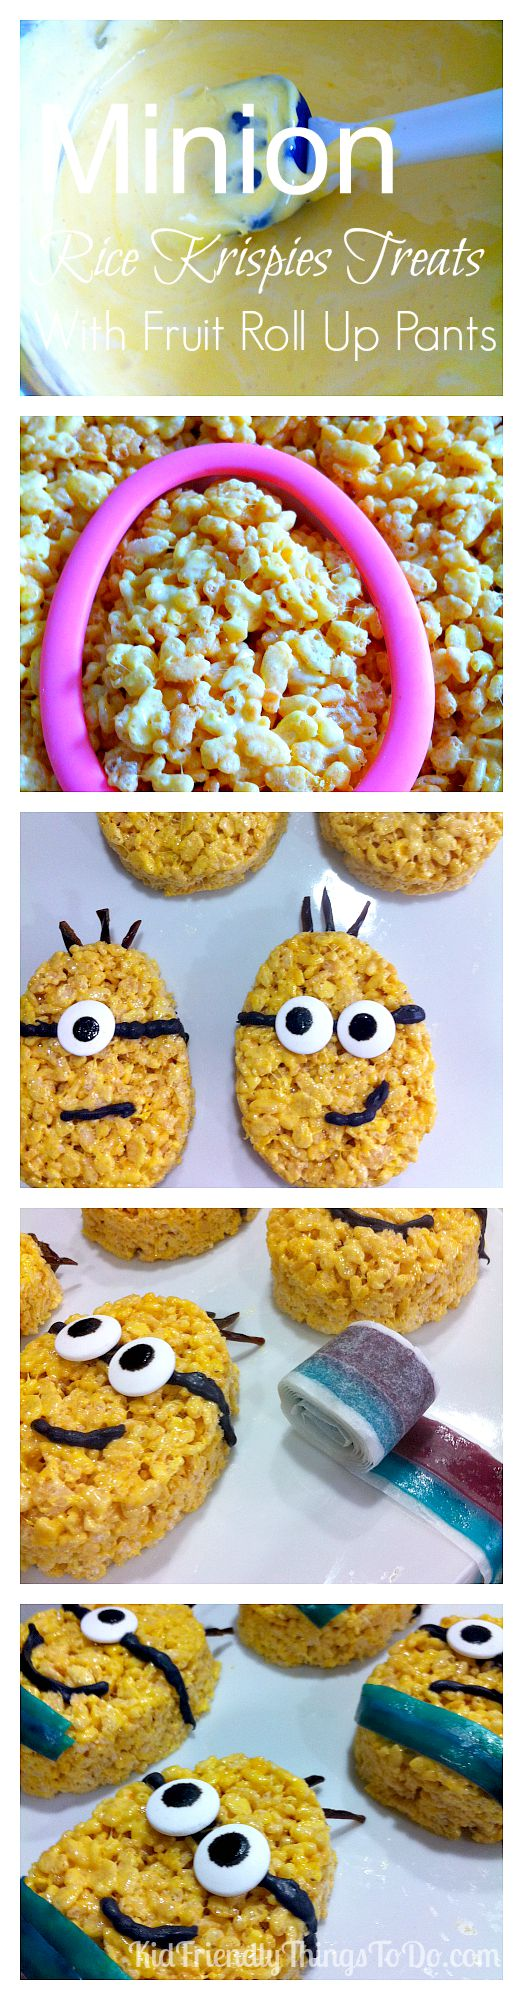 Minion Rice Krispies Treats Fun Food Idea - What a fun idea that all kids at the birthday party will love! The Minions even have fruit roll up pants!